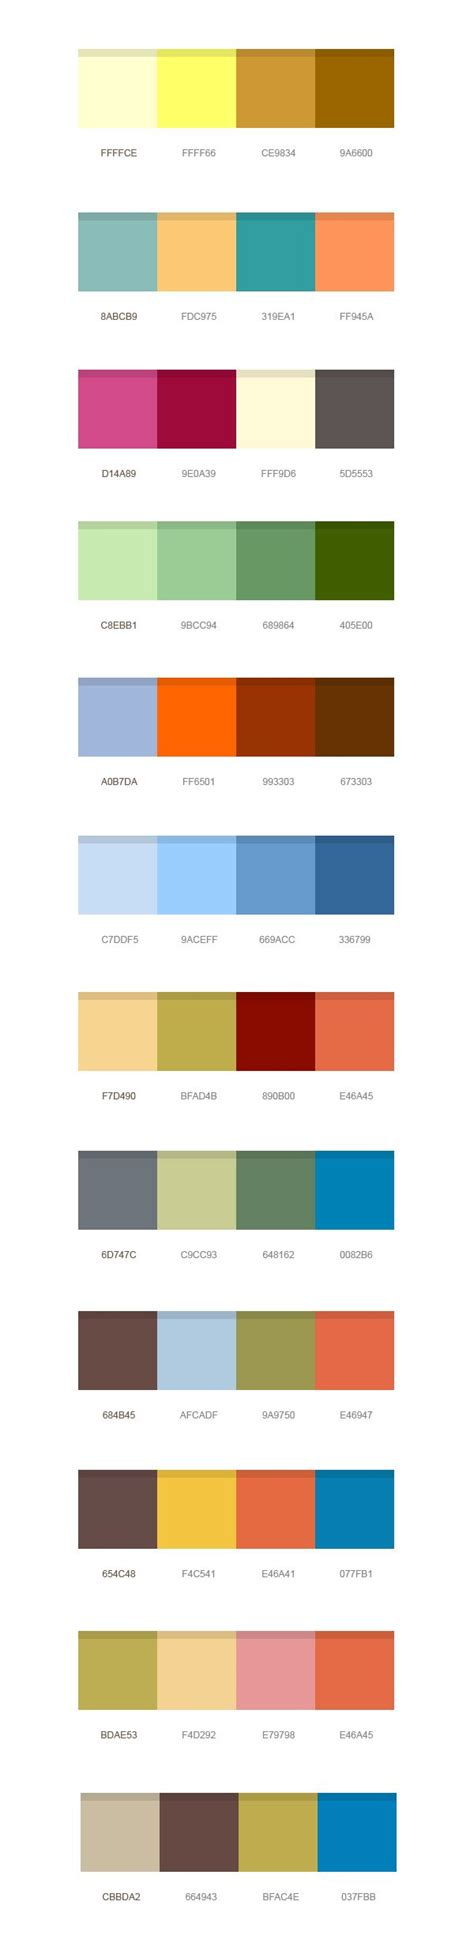 12 color combinations logos business and color combos 12 set of color combinations psd vector images 365psd com